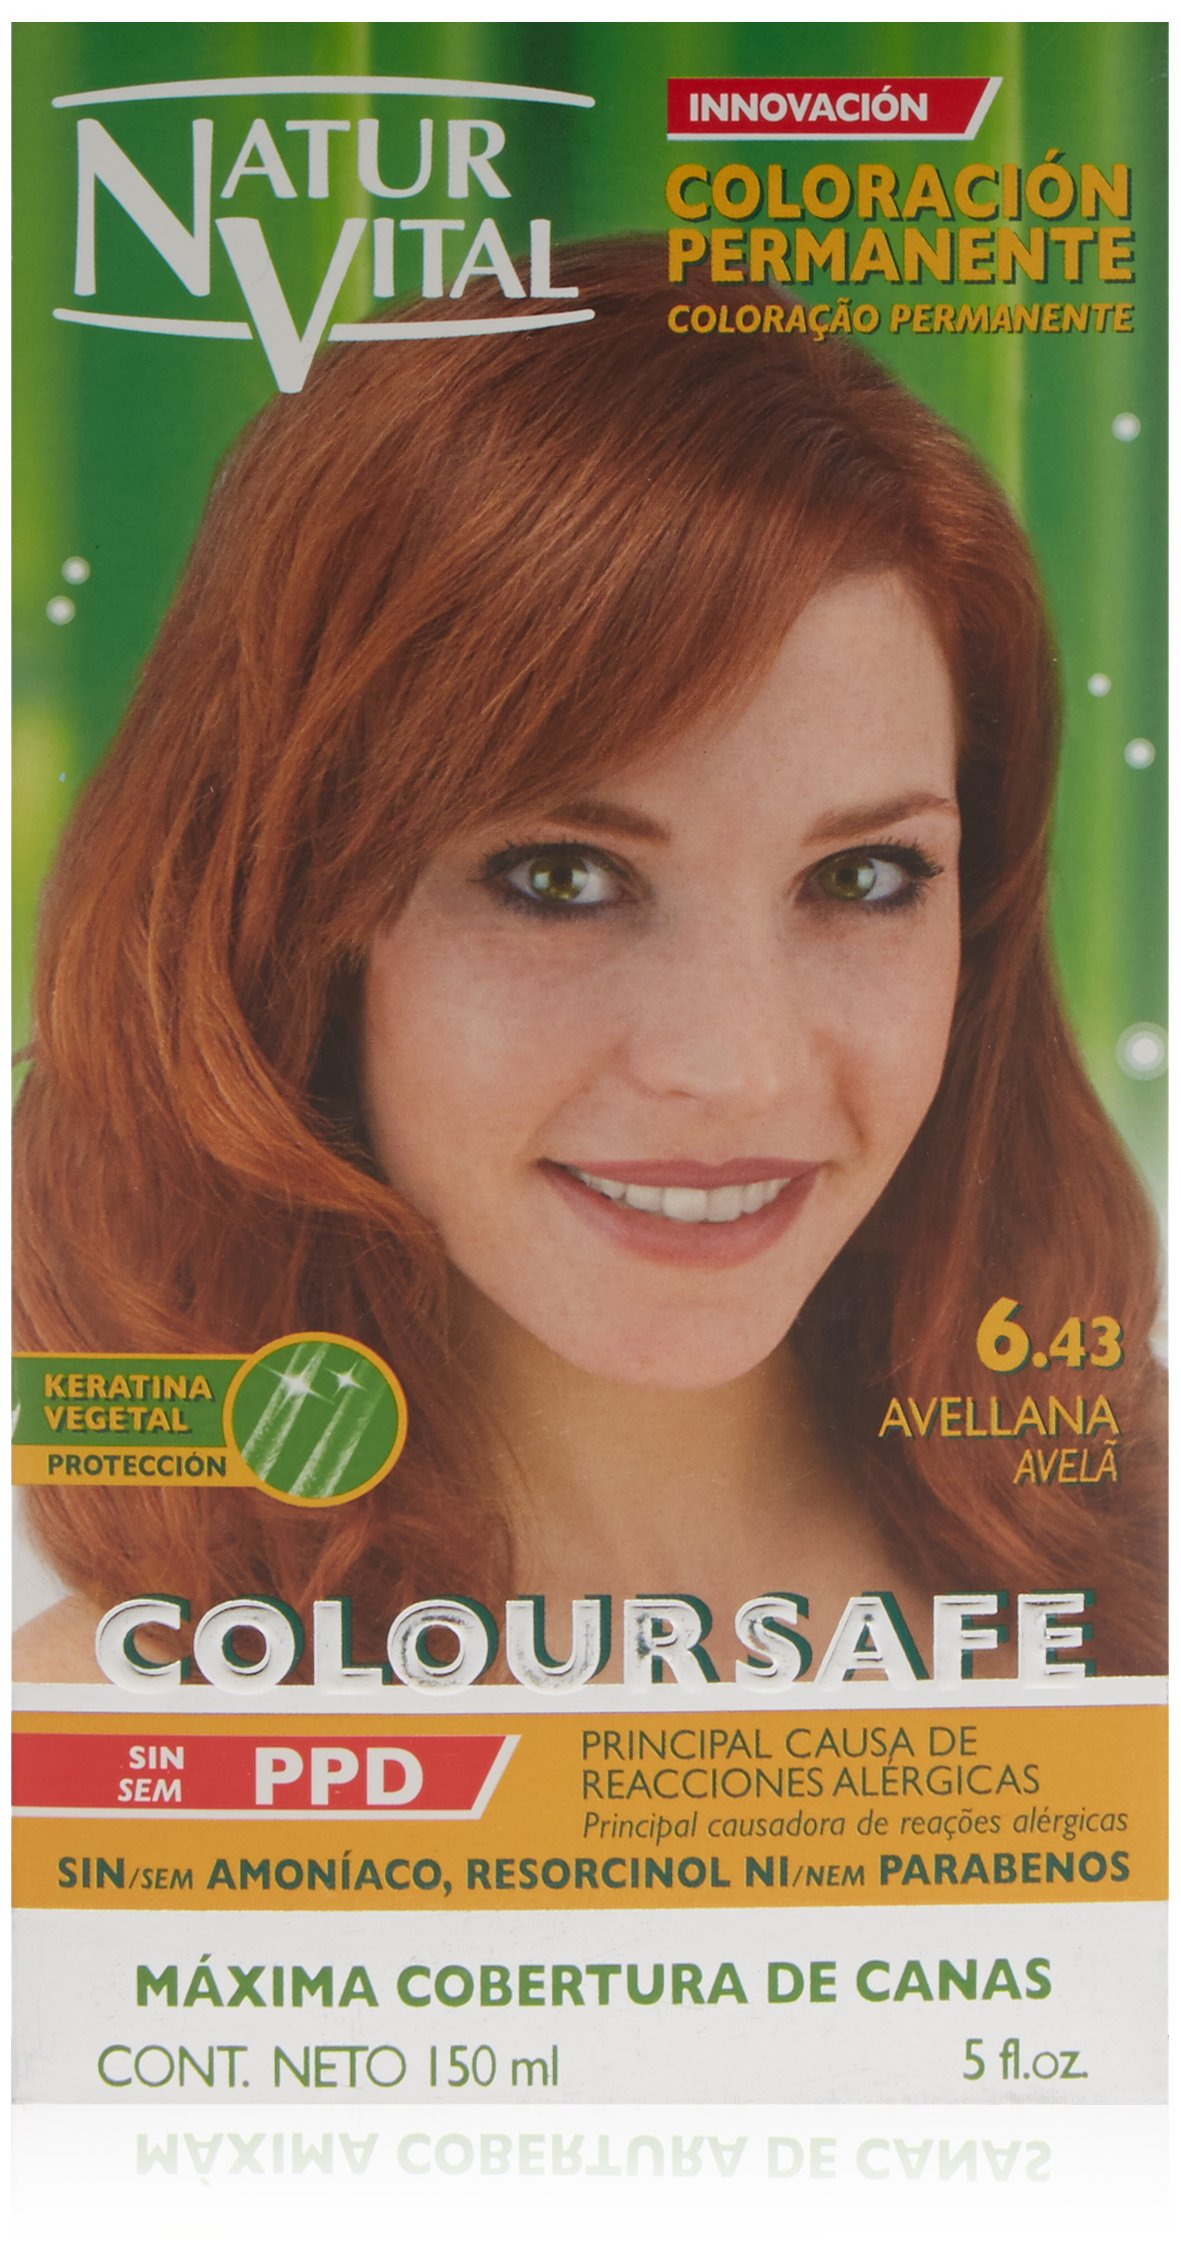 Amazon.com : Permanent Hair Dye, Permanent Hair Color. Coloursafe, No Ammonia, Resorcinol or Parabens (~6.4 hazelnut) : Chemical Hair Dyes : Beauty